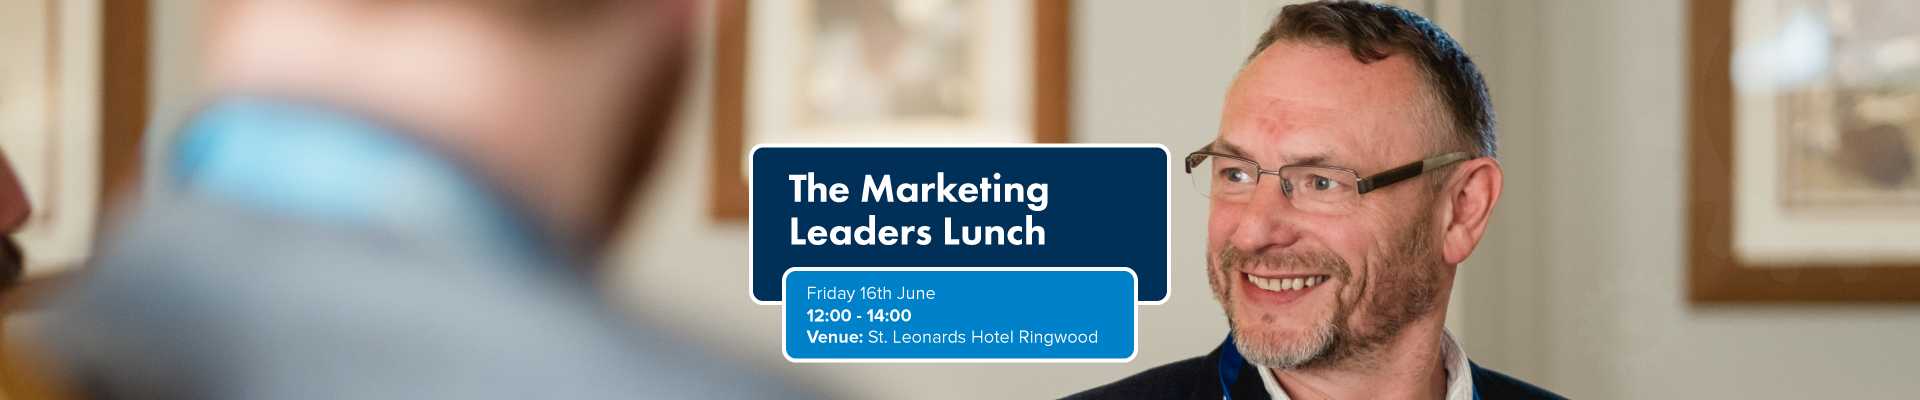 Marketing-Leaders-Lunch-March-2017_Banner_1-1.png